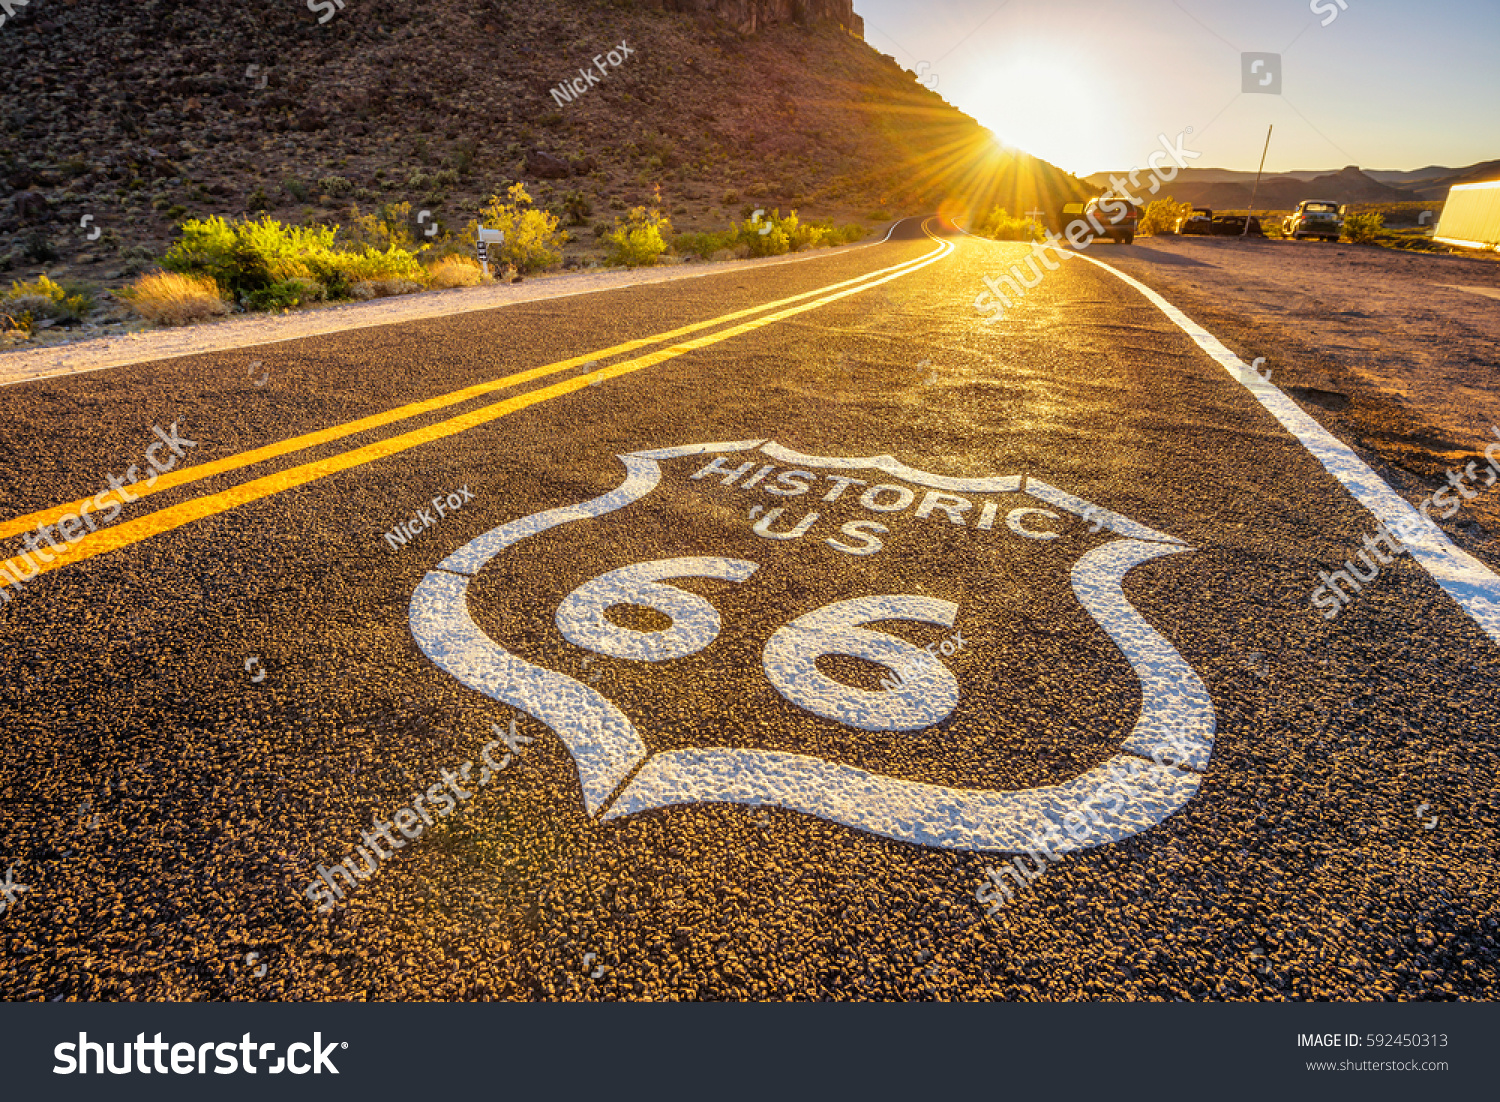 Street sign on historic route 66 in the Mojave desert photographed against the sun at sunset #592450313